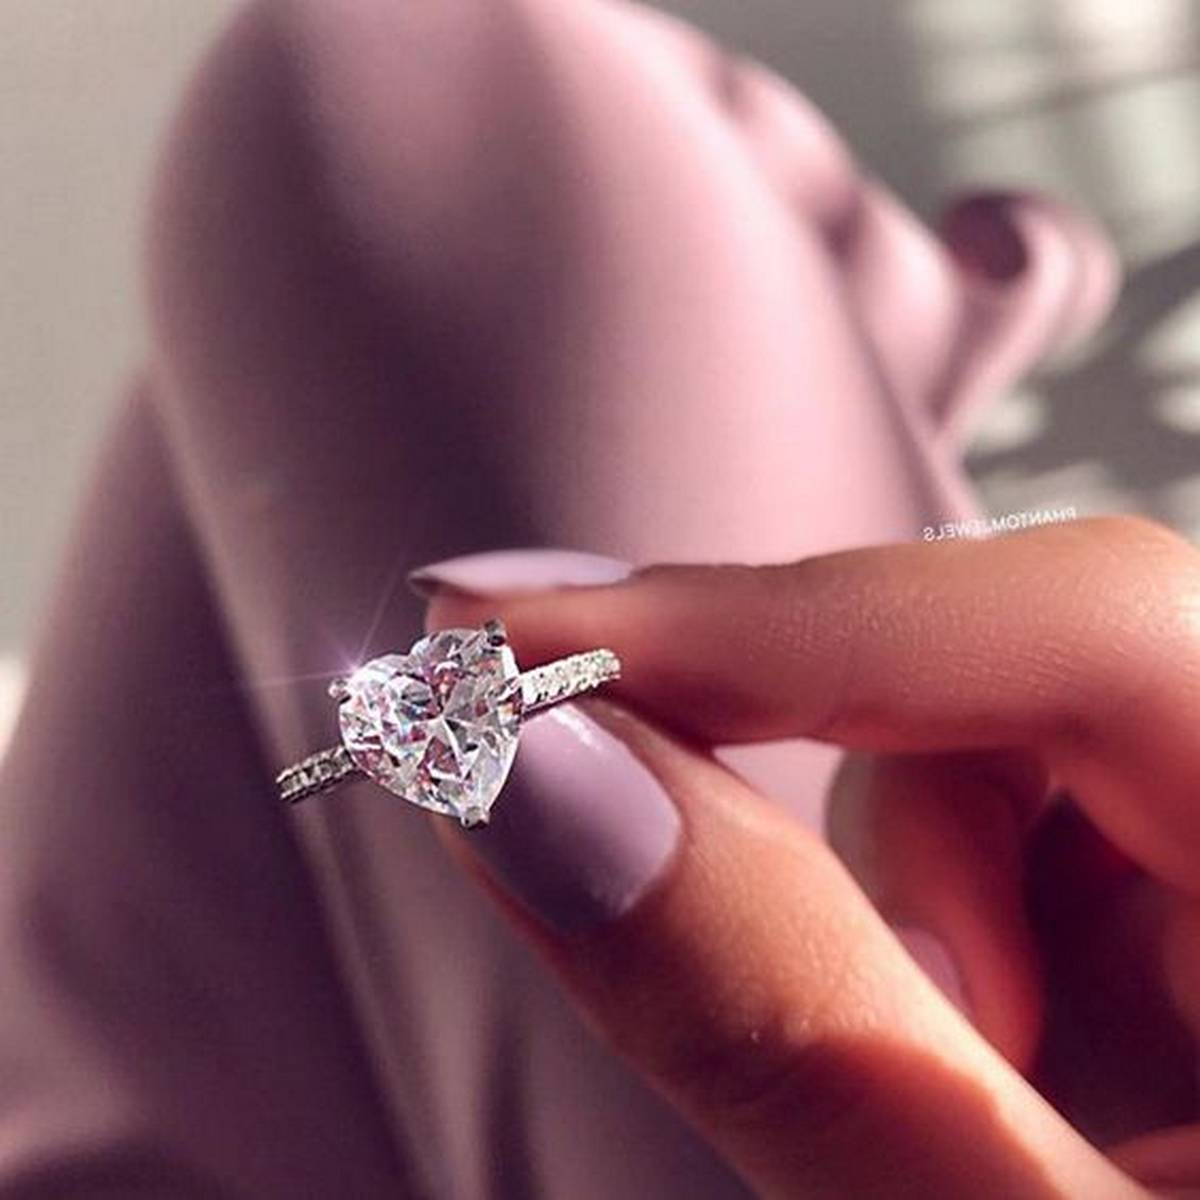 Luxury Ladies Silver Engagement Rings for Women 925 Silver Oval Gemstone Ring for Wedding Jewelry Gifts